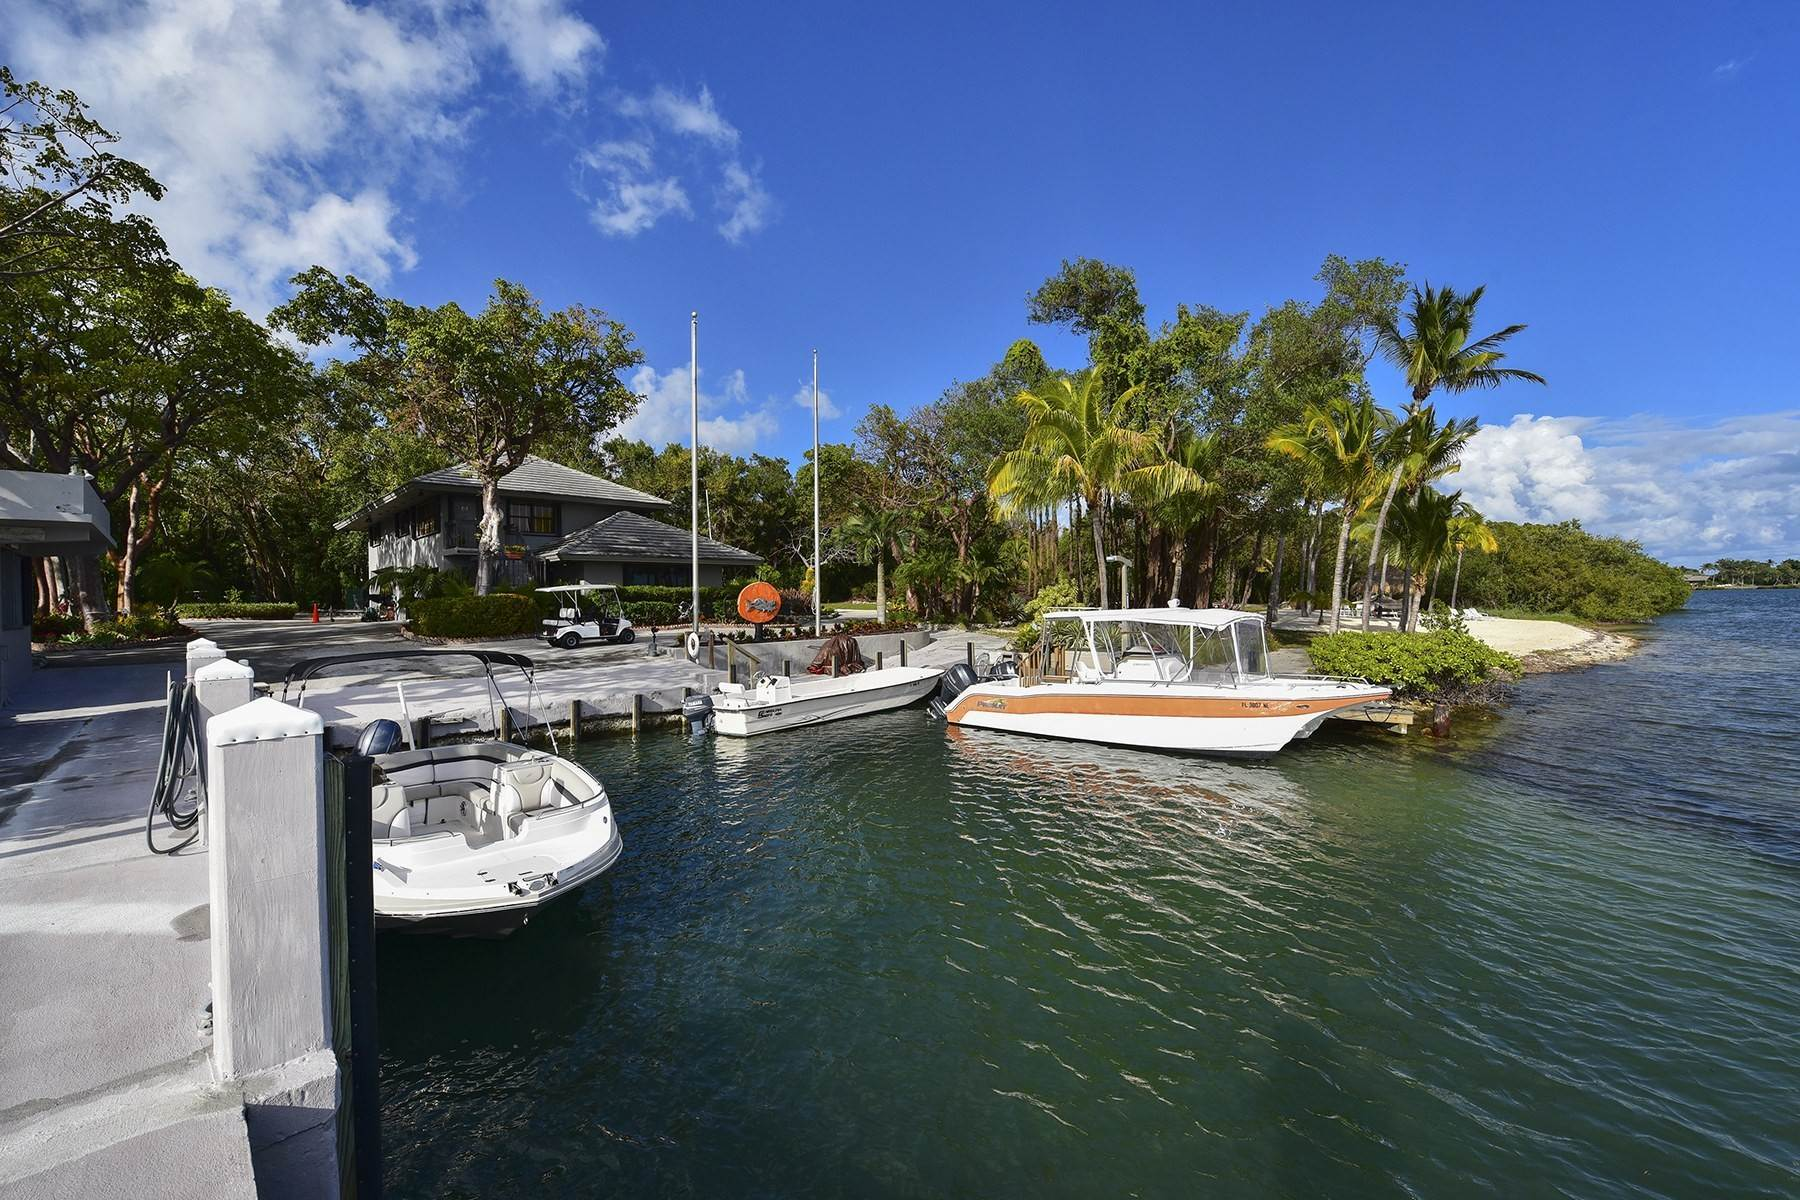 8. Property for Sale at Pumpkin Key - Private Island, Key Largo, FL Pumpkin Key - Private Island Key Largo, Florida 33037 United States